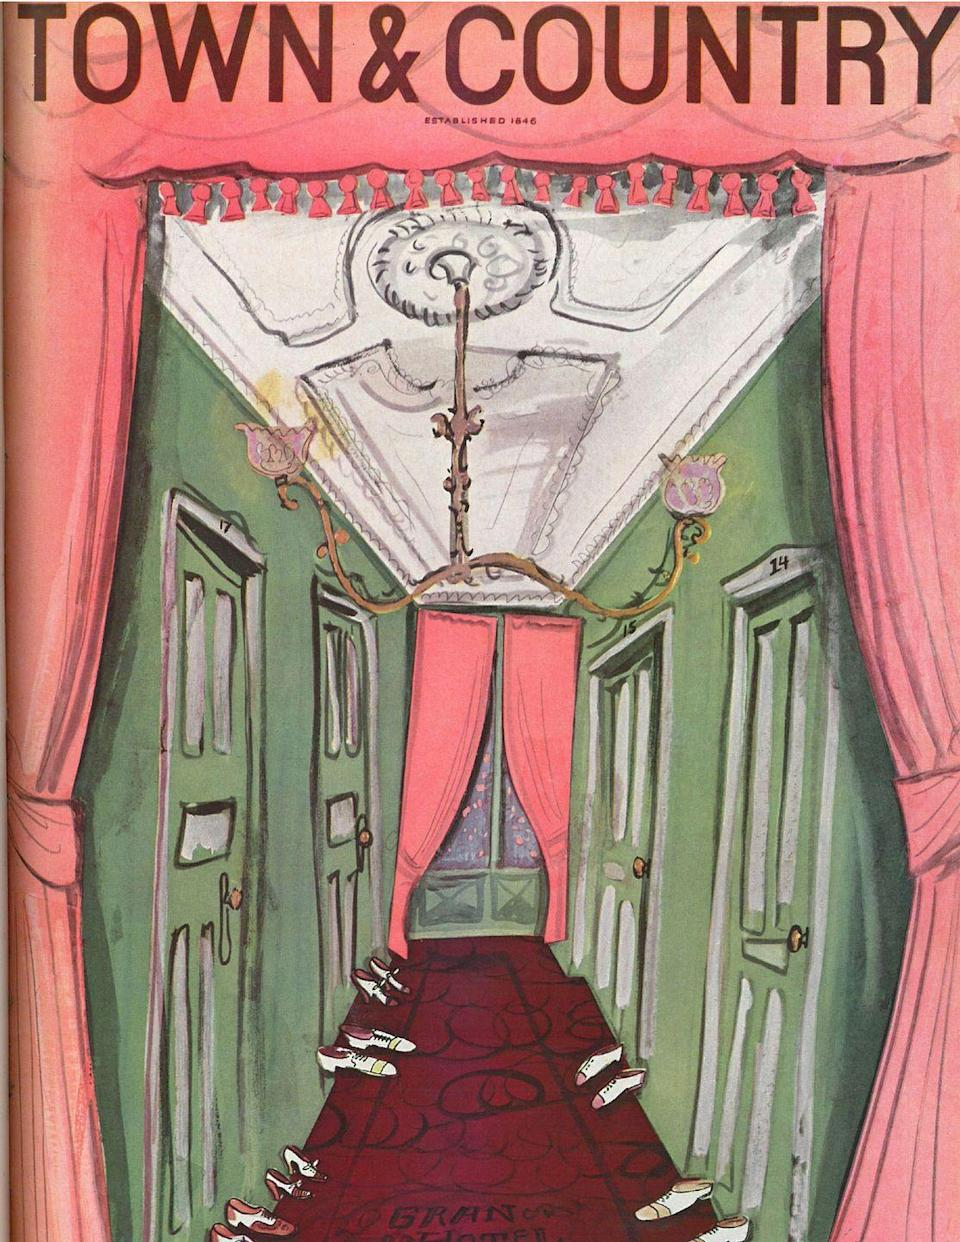 Photo credit: Ludwig Bemelmans for T&C